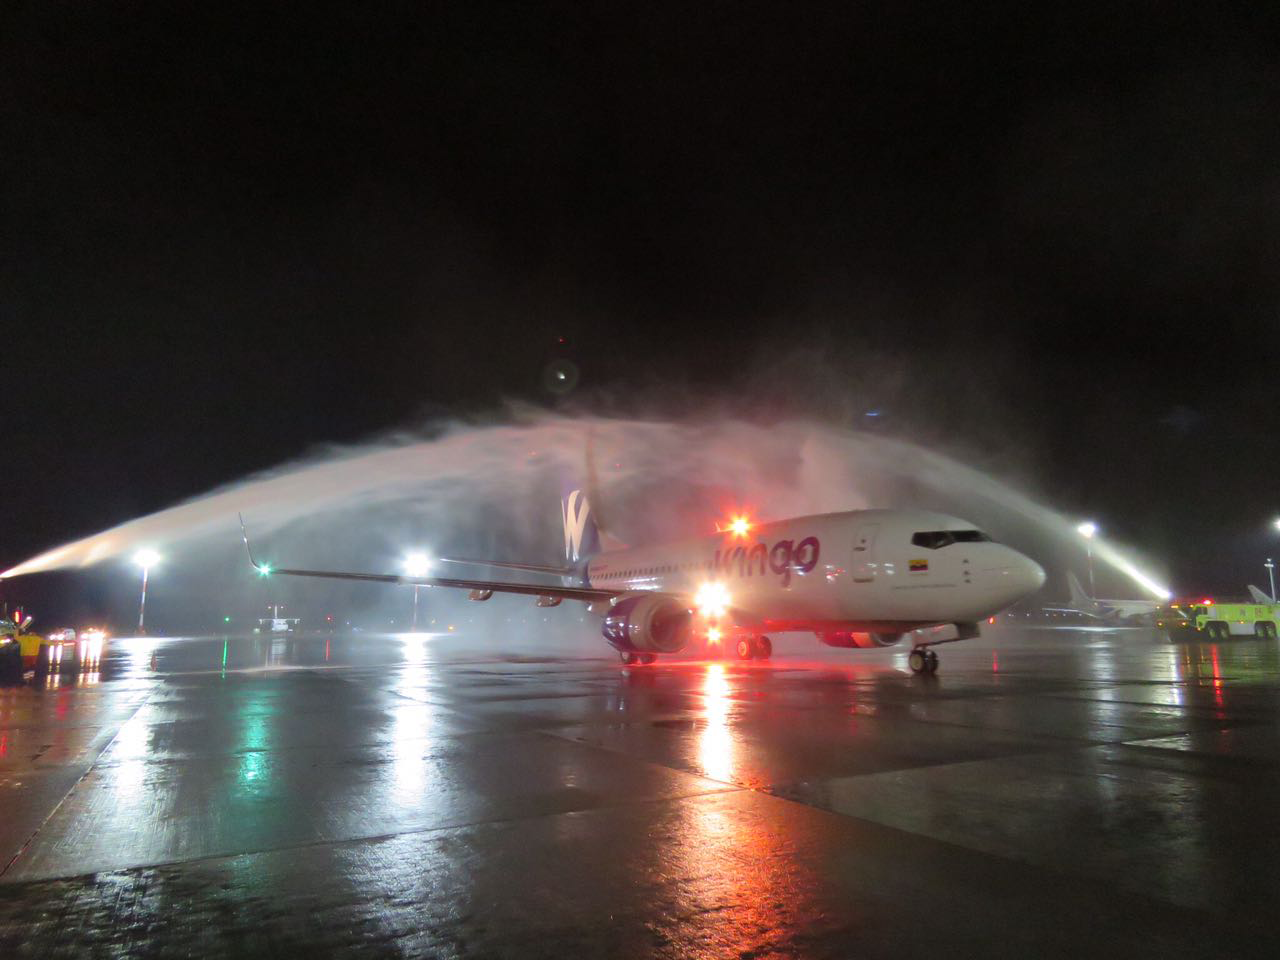 Wingo starts operations at Mariscal Sucre Airport